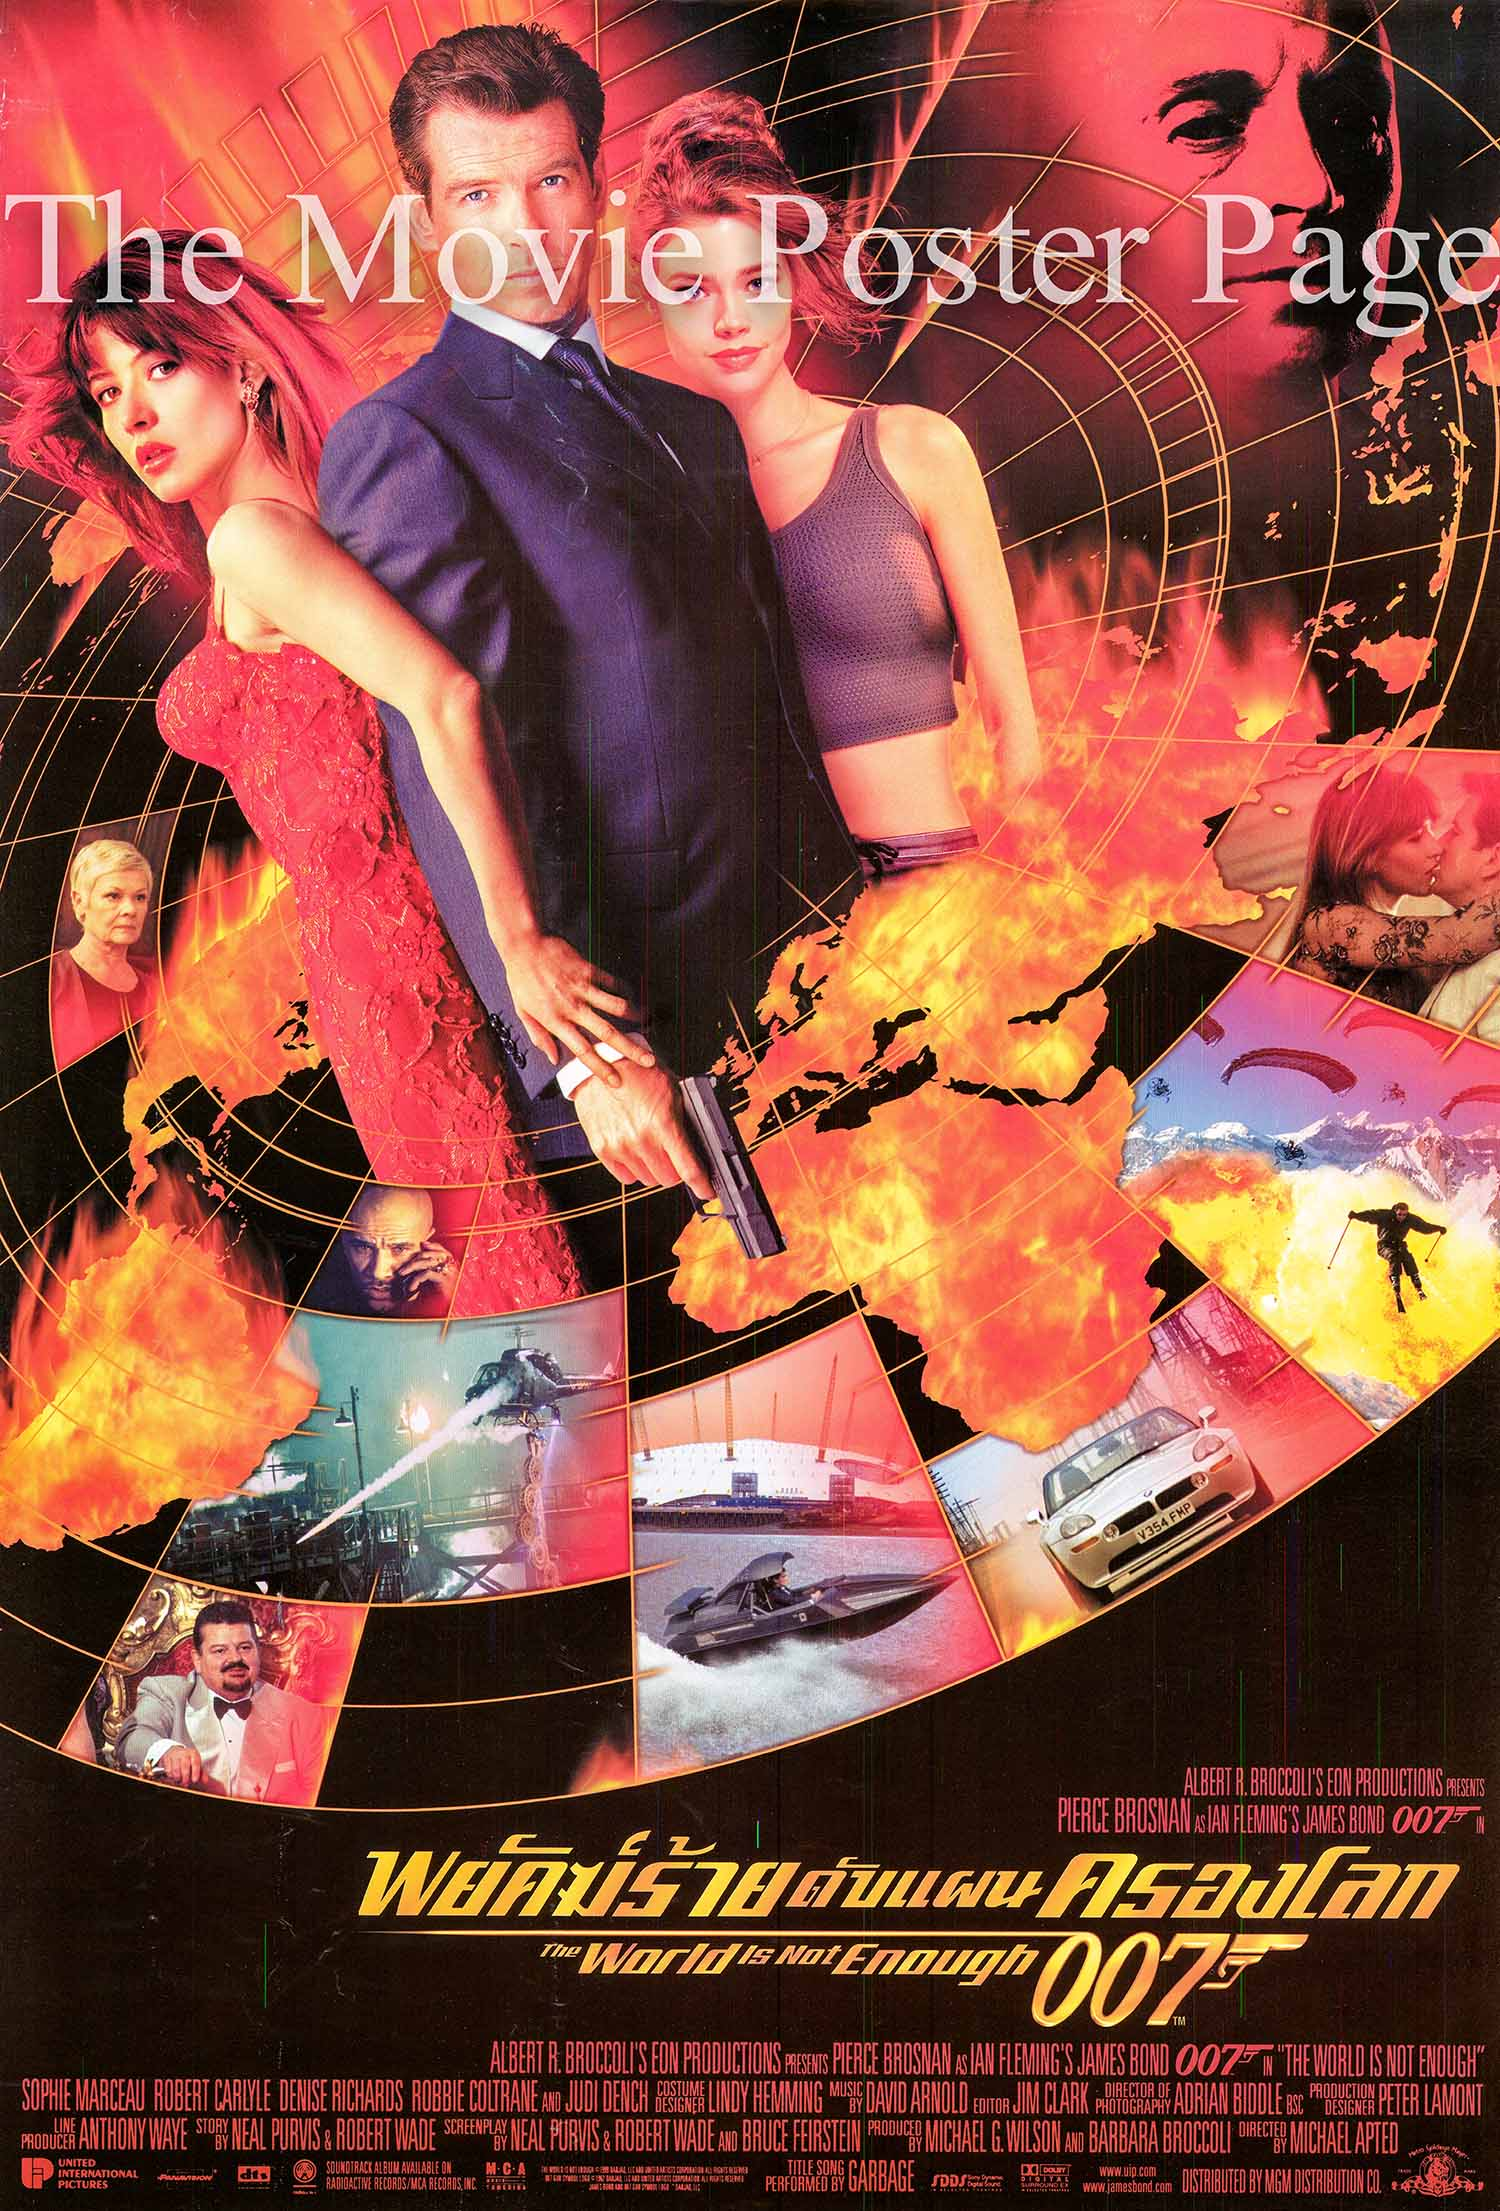 Pictured is a Thai promotional poster for the 1999 Michael Apted film The World is Not Enough starring Pierce Brosnan as James Bond.